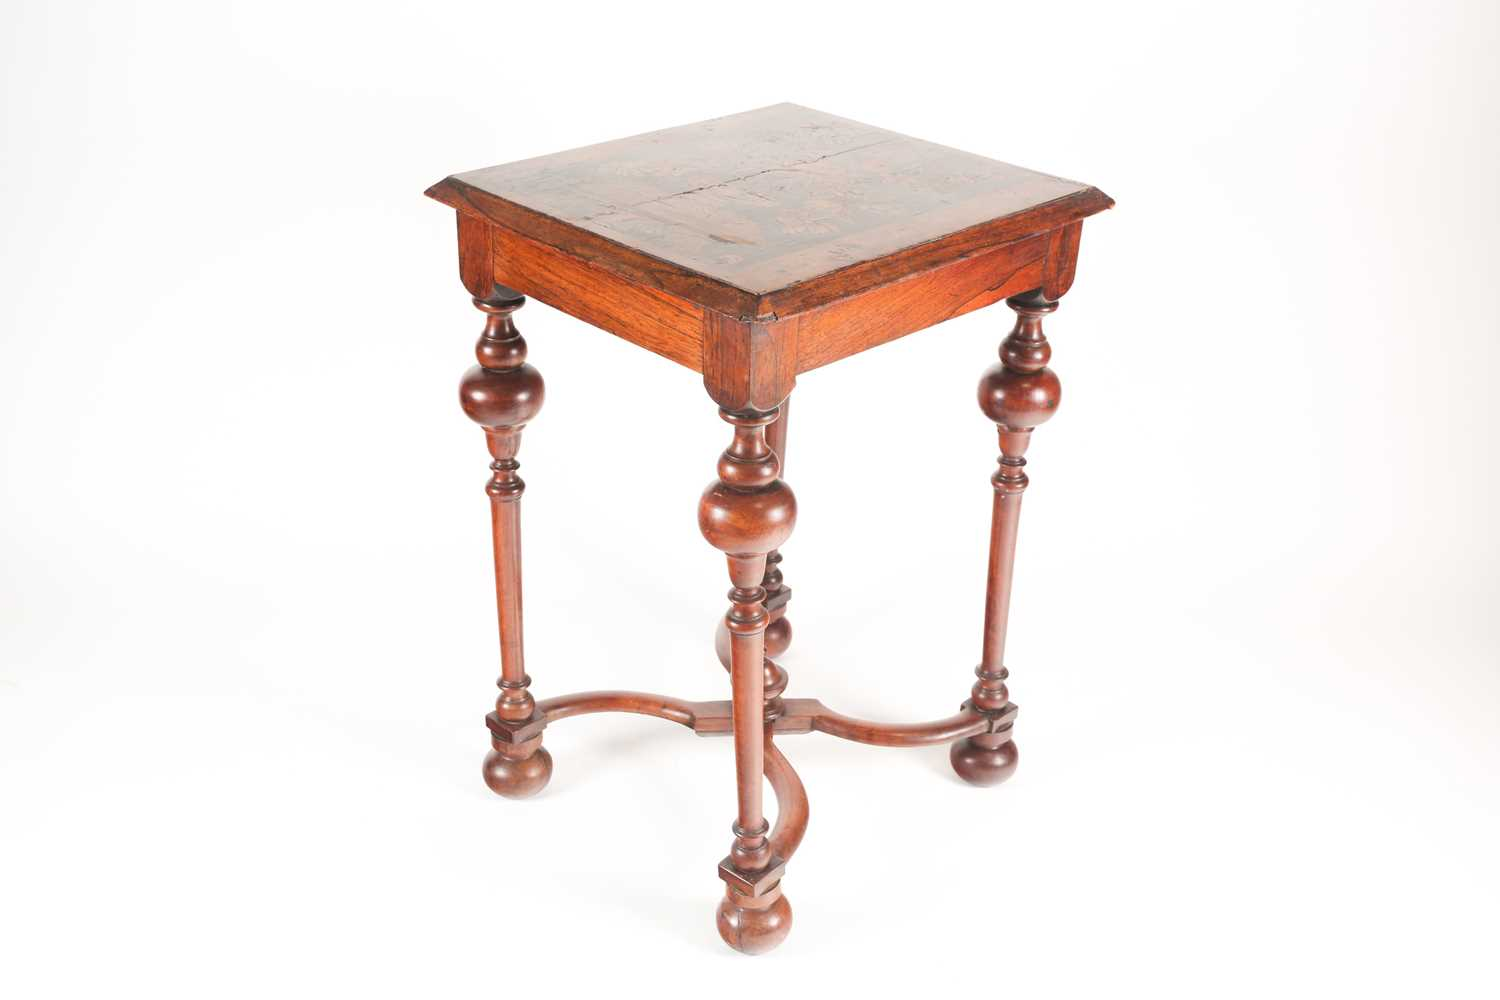 A late 17th-century style Dutch/ Portuguese rosewood, walnut and marquetry pedestal table. The top